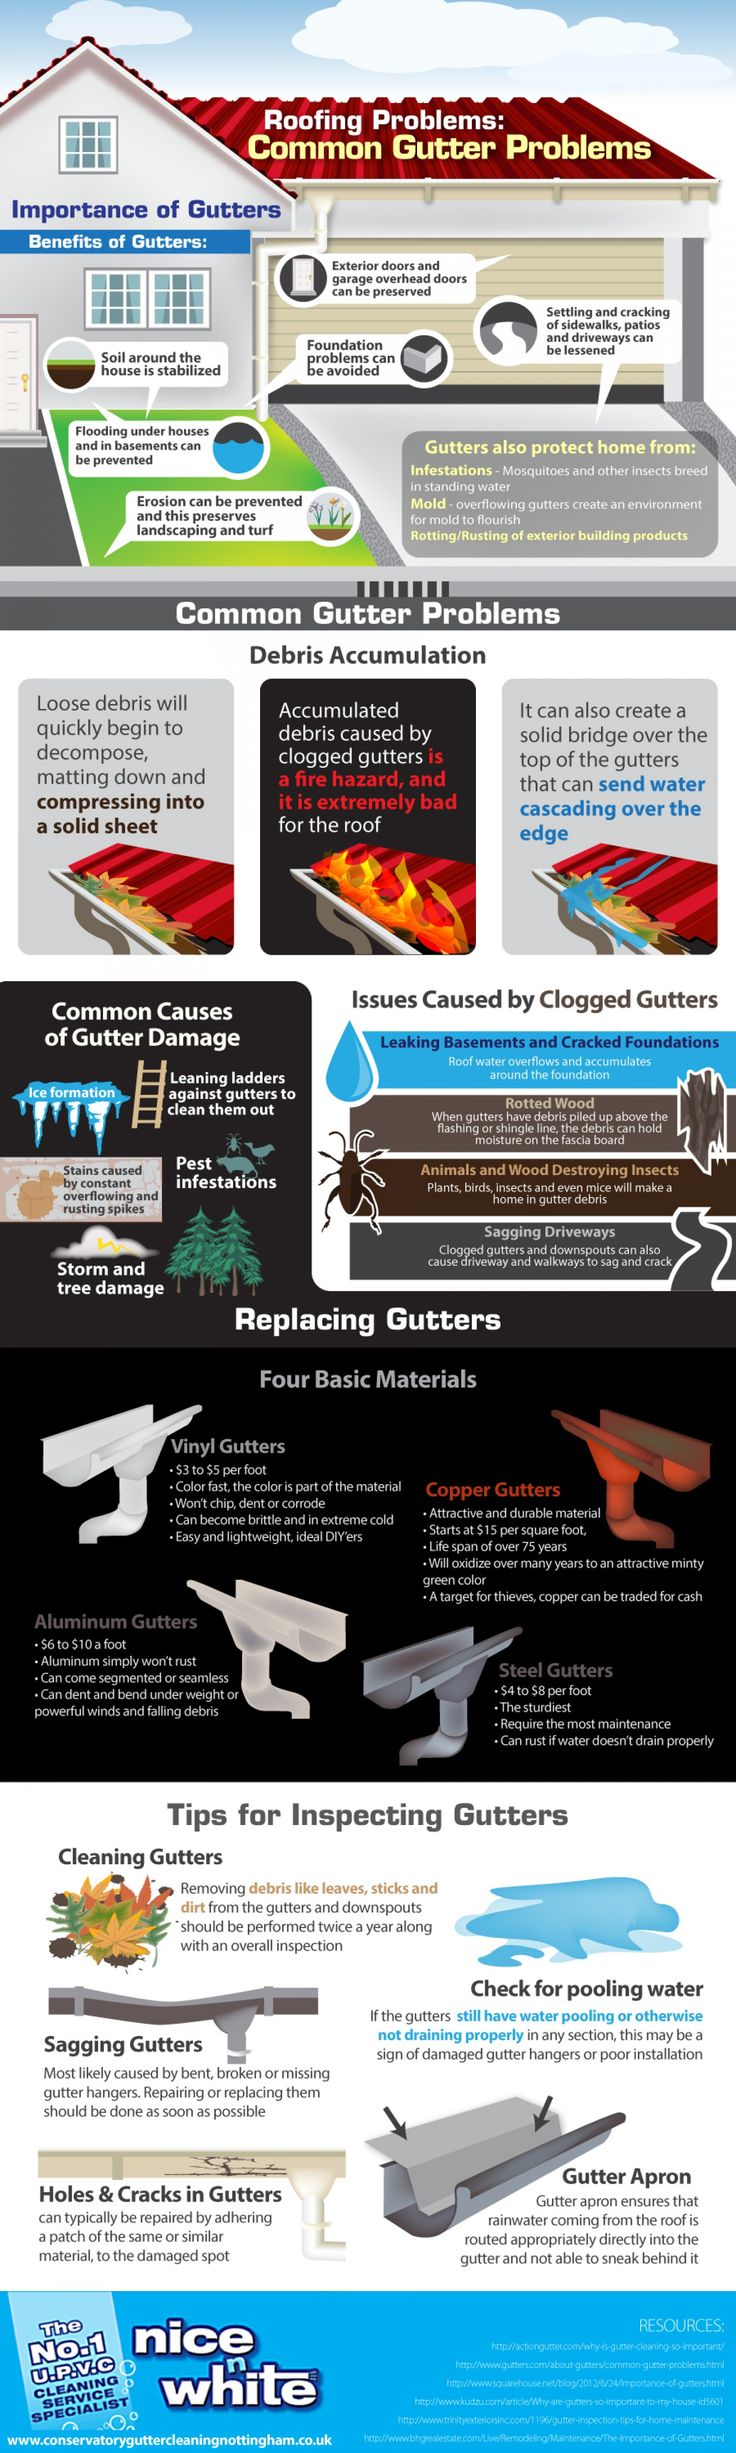 58 Best Roofing Tips Images On Pinterest Infographic